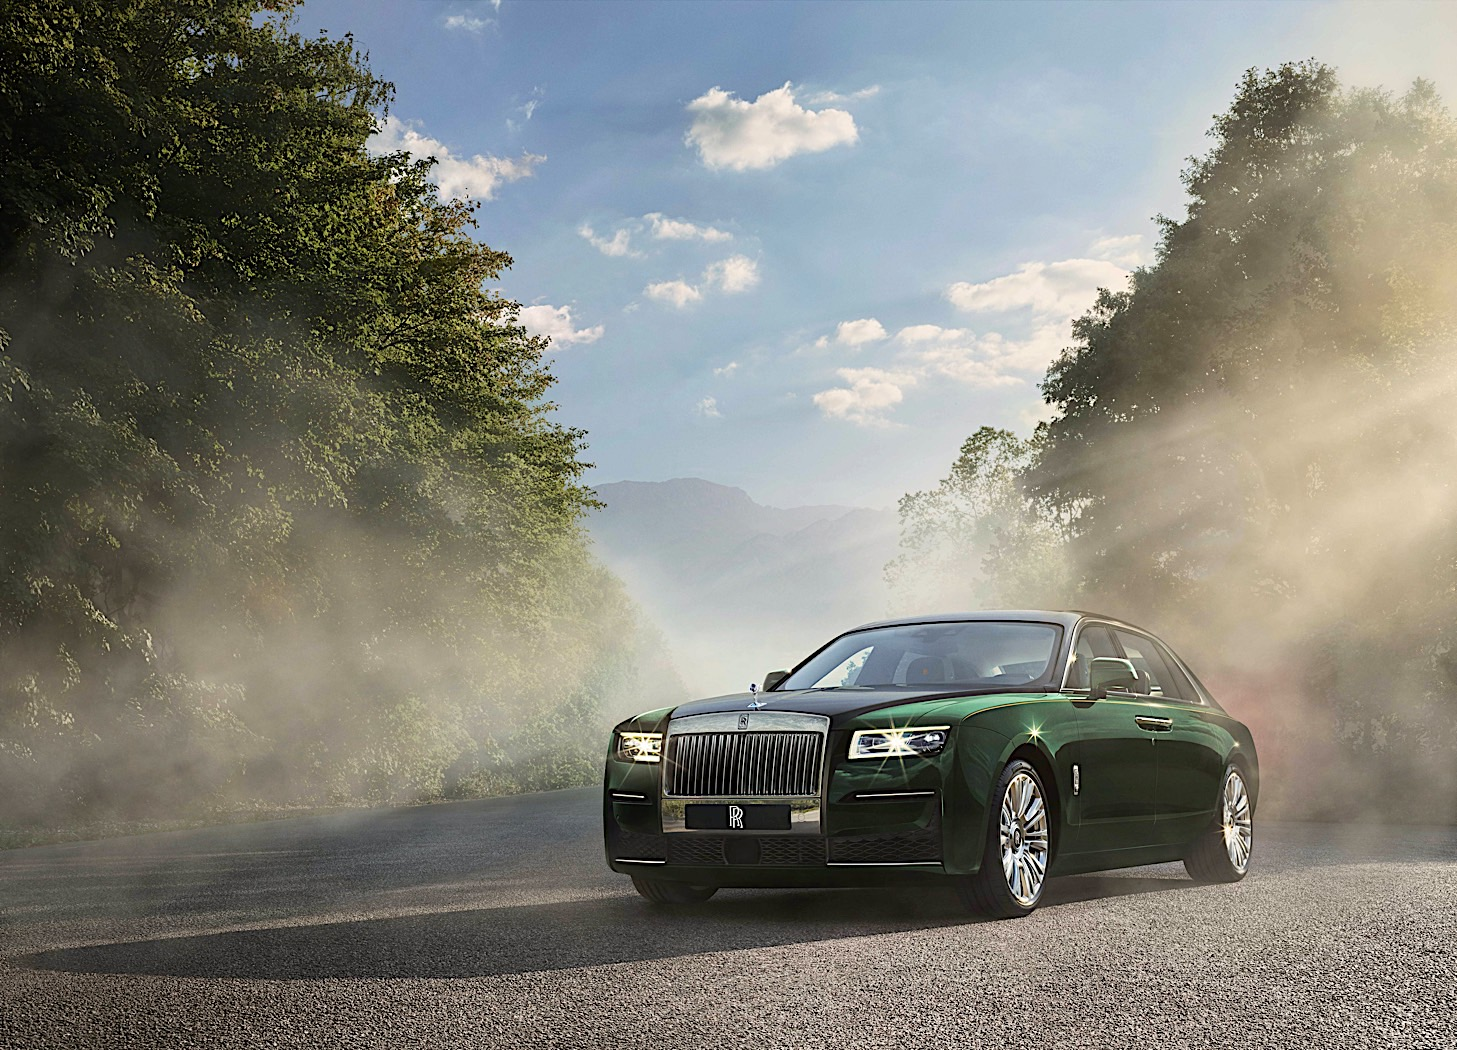 The Rolls-Royce Ghost Extended is a very long luxury vehicle